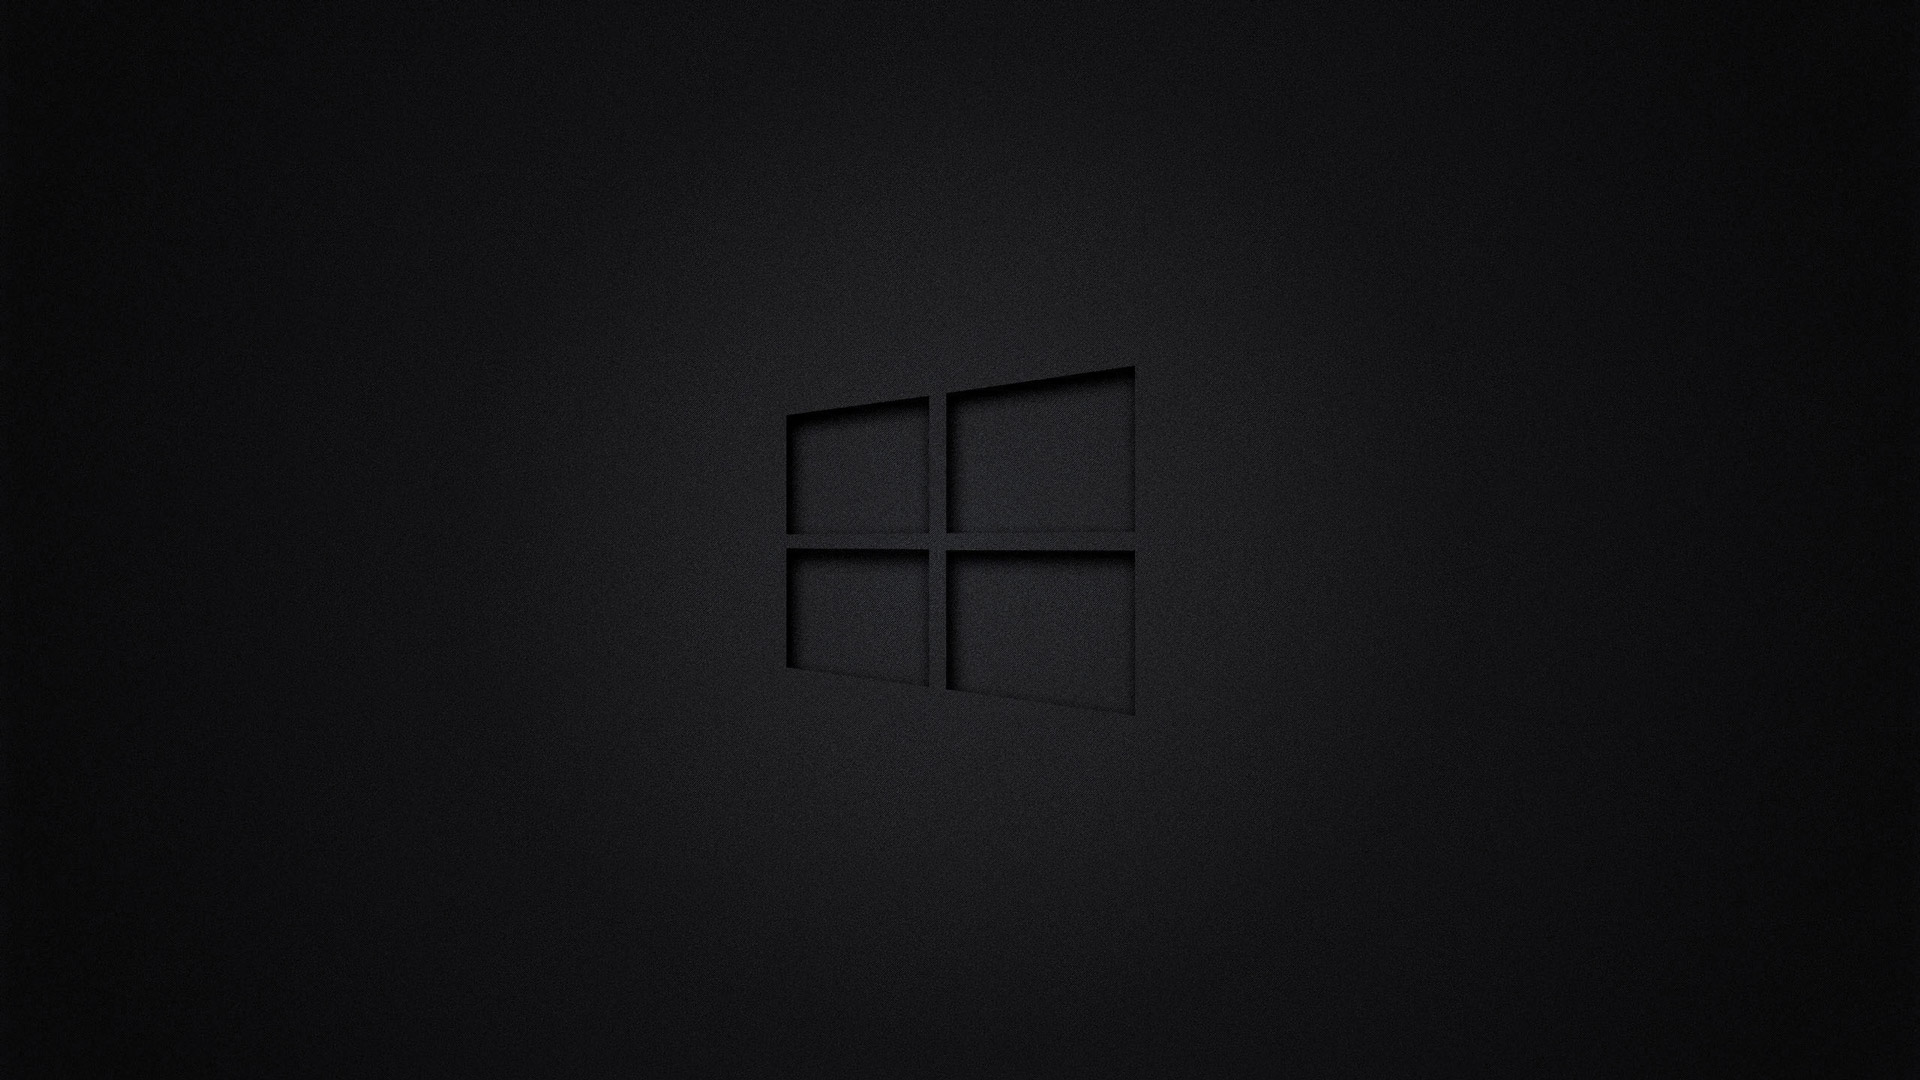 Windows 10 Dark Hd Computer 4k Wallpapers Images Backgrounds Photos And Pictures